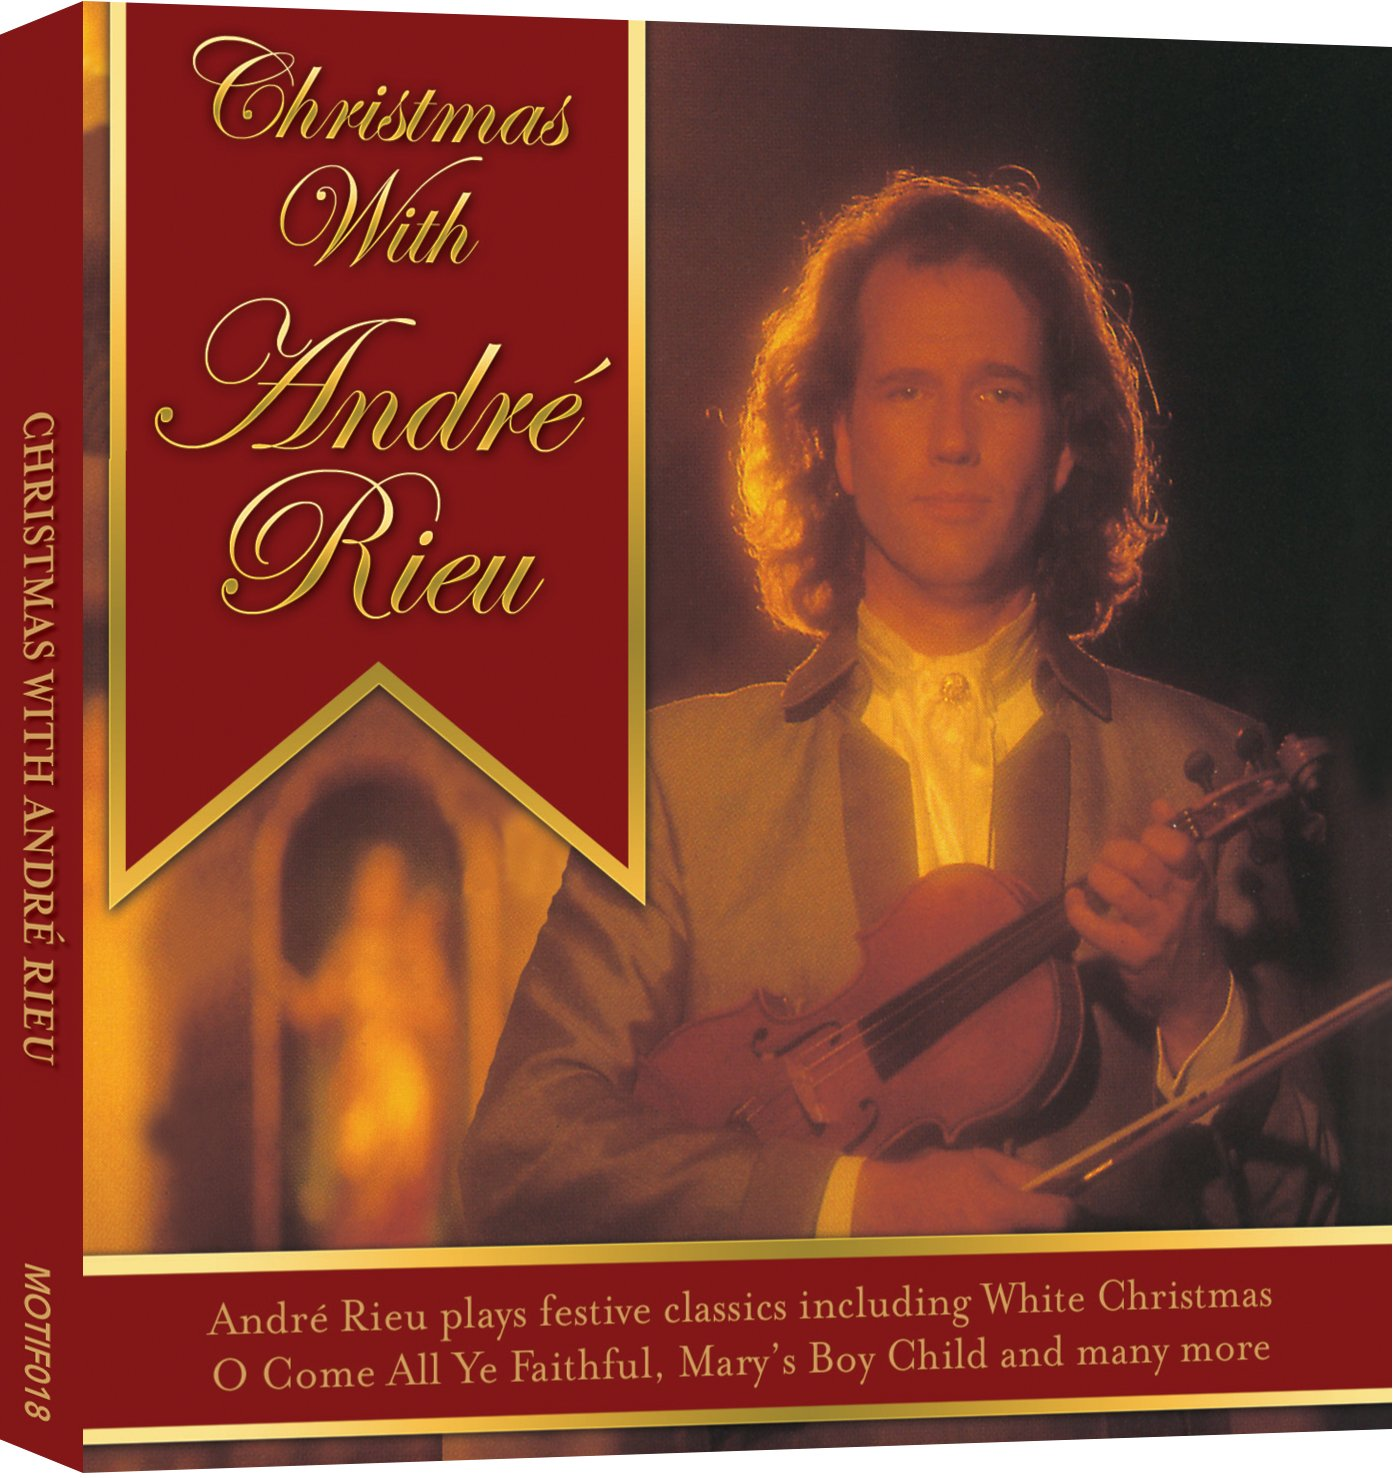 Christmas With André Rieu by André Rieu: Amazon.co.uk: Music